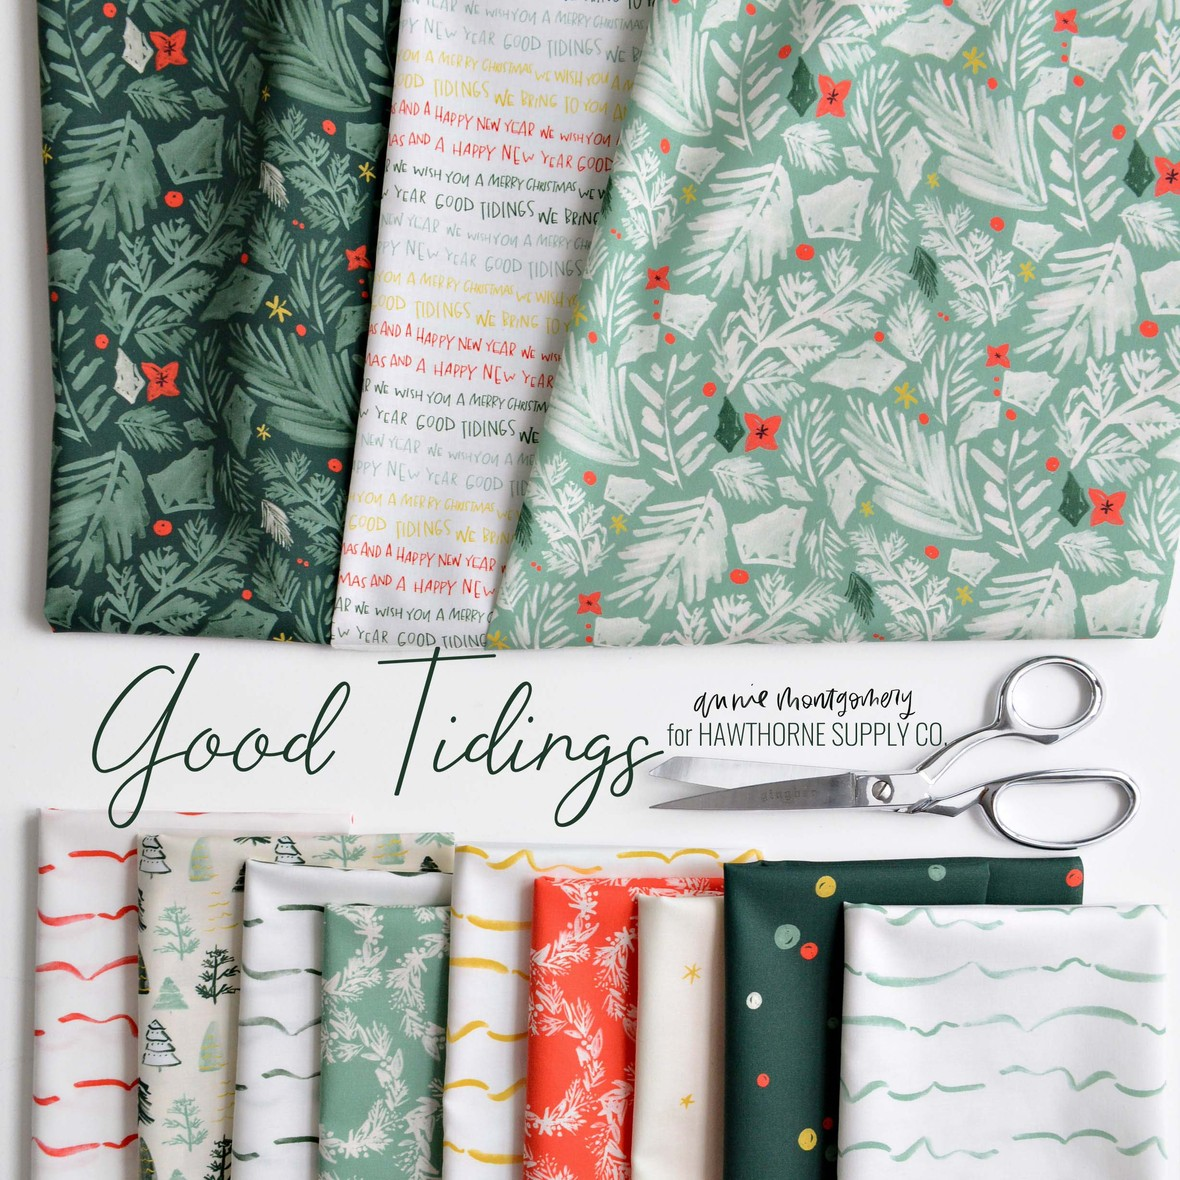 Good Tidings Fabric Poster Annie Montgomery Design at Hawthorne Supply Co